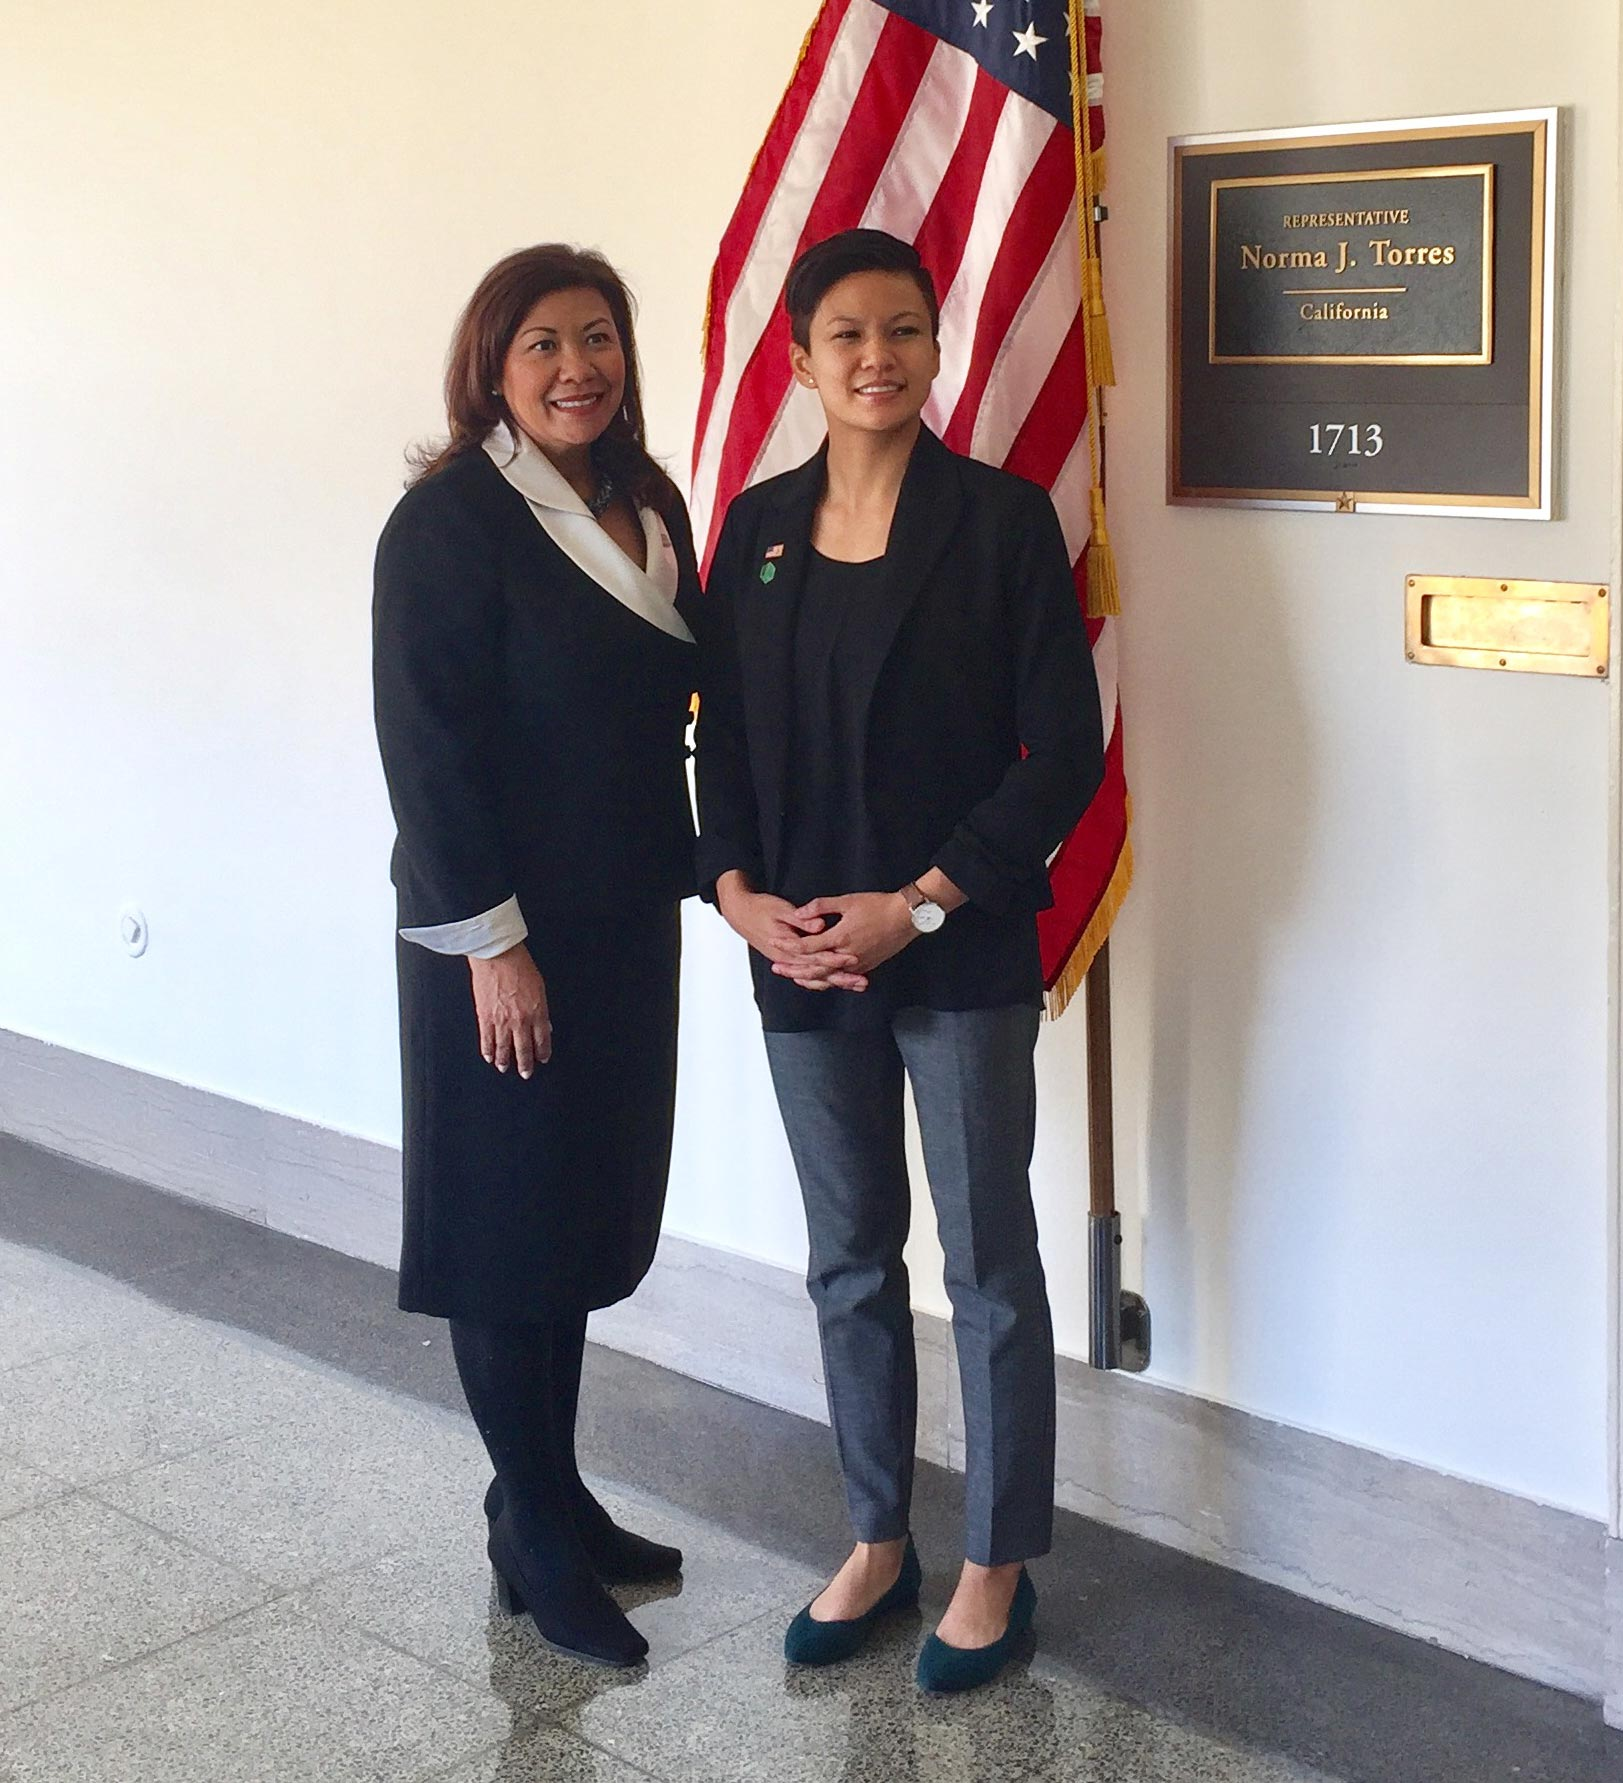 Marya Chan, '17 food and nutrition major, with Congresswoman Norma J. Torres who invited Chan to hear President Donald Trump's first State of the Union address as her guest.